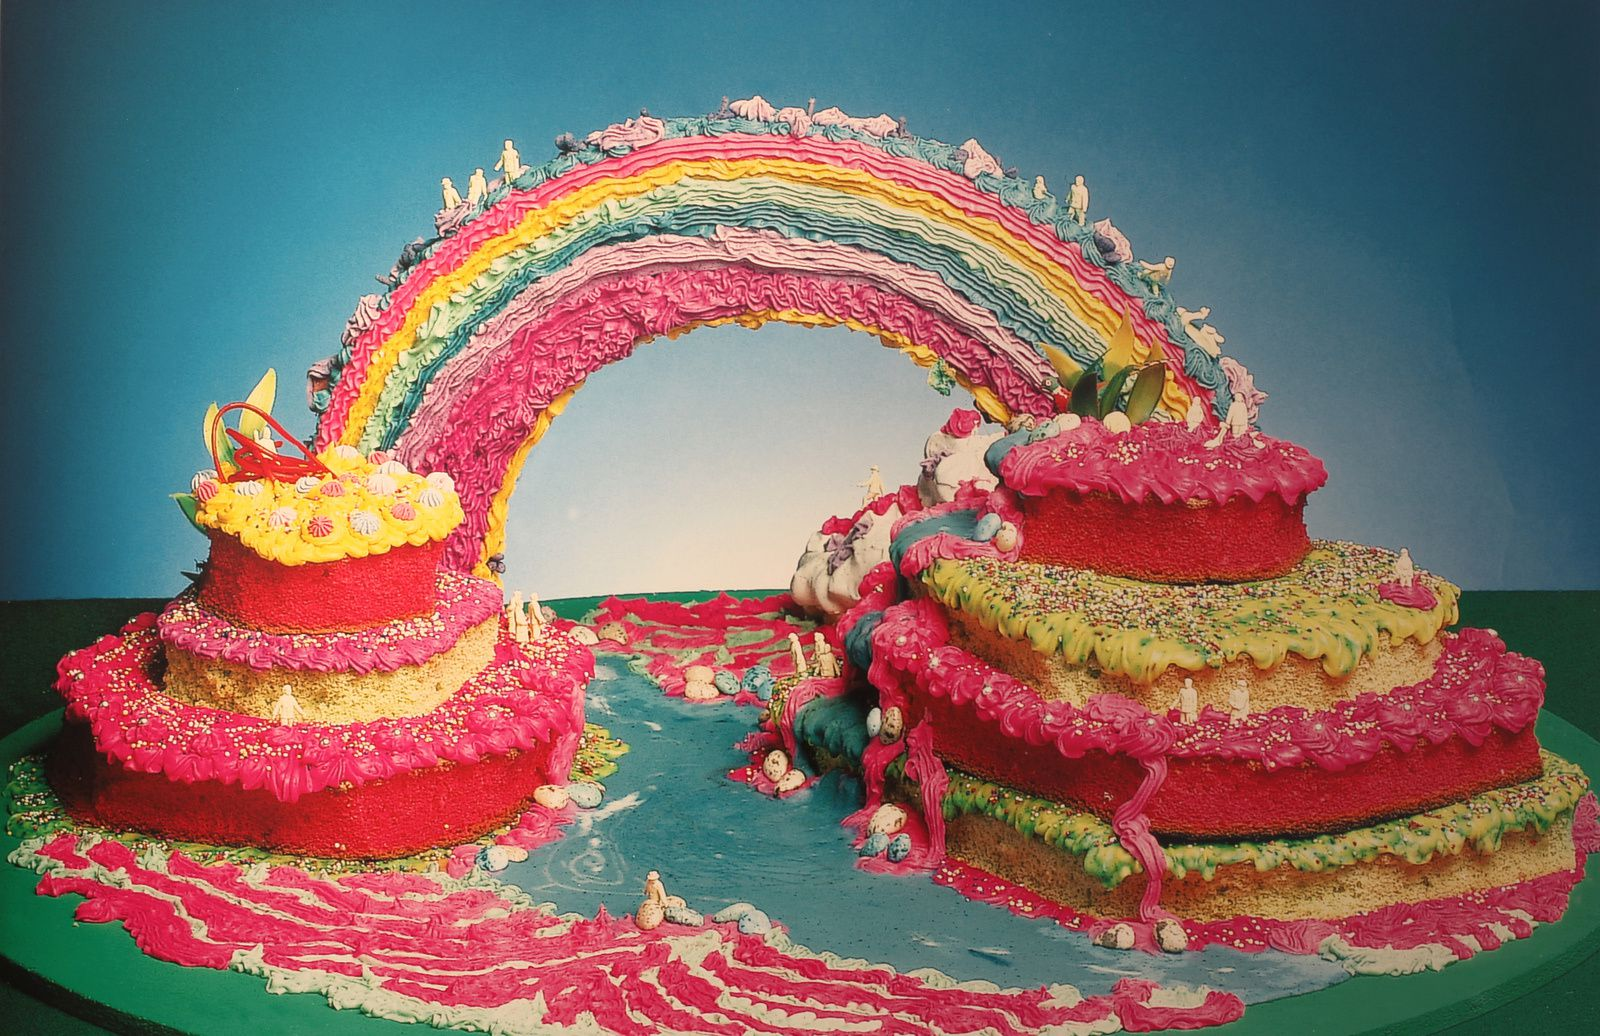 """Gâteau Arc-en-ciel"", 1974 de Dorothée SELZ - Courtesy Galerie Lara VINCY © Photo Éric Simon"